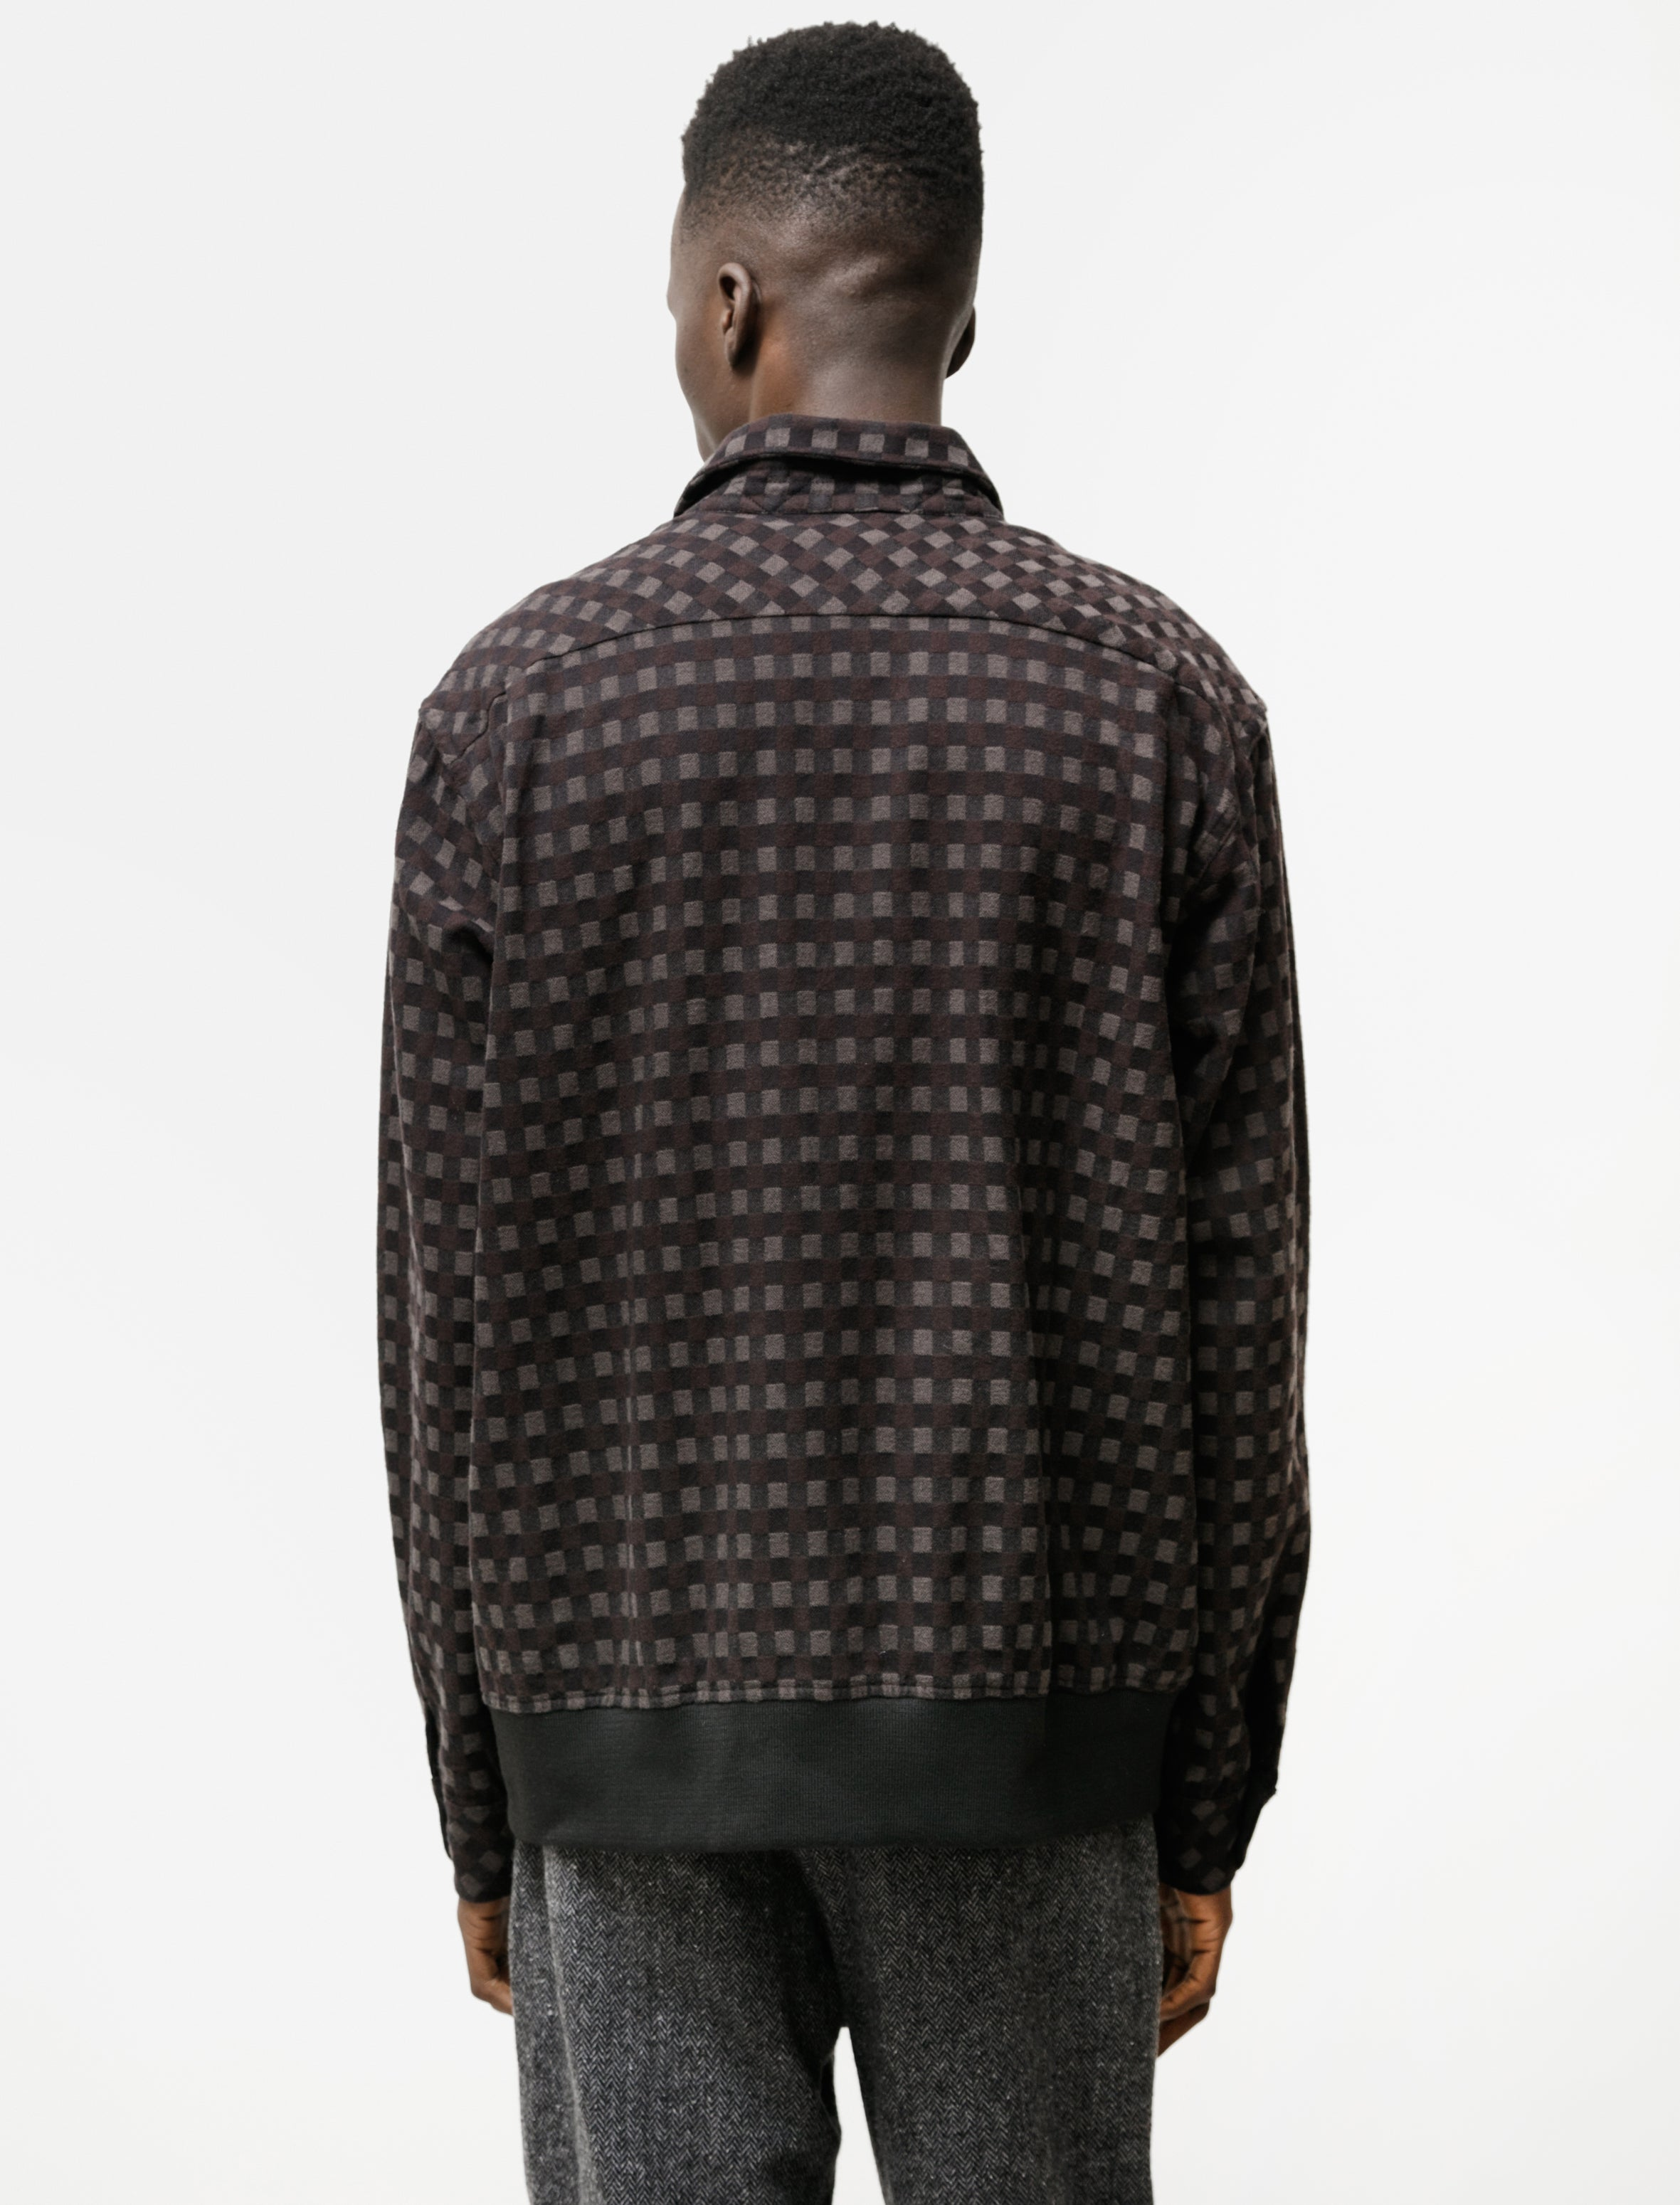 Engineered Garments Classic Shirt Vintage Check Black Brown